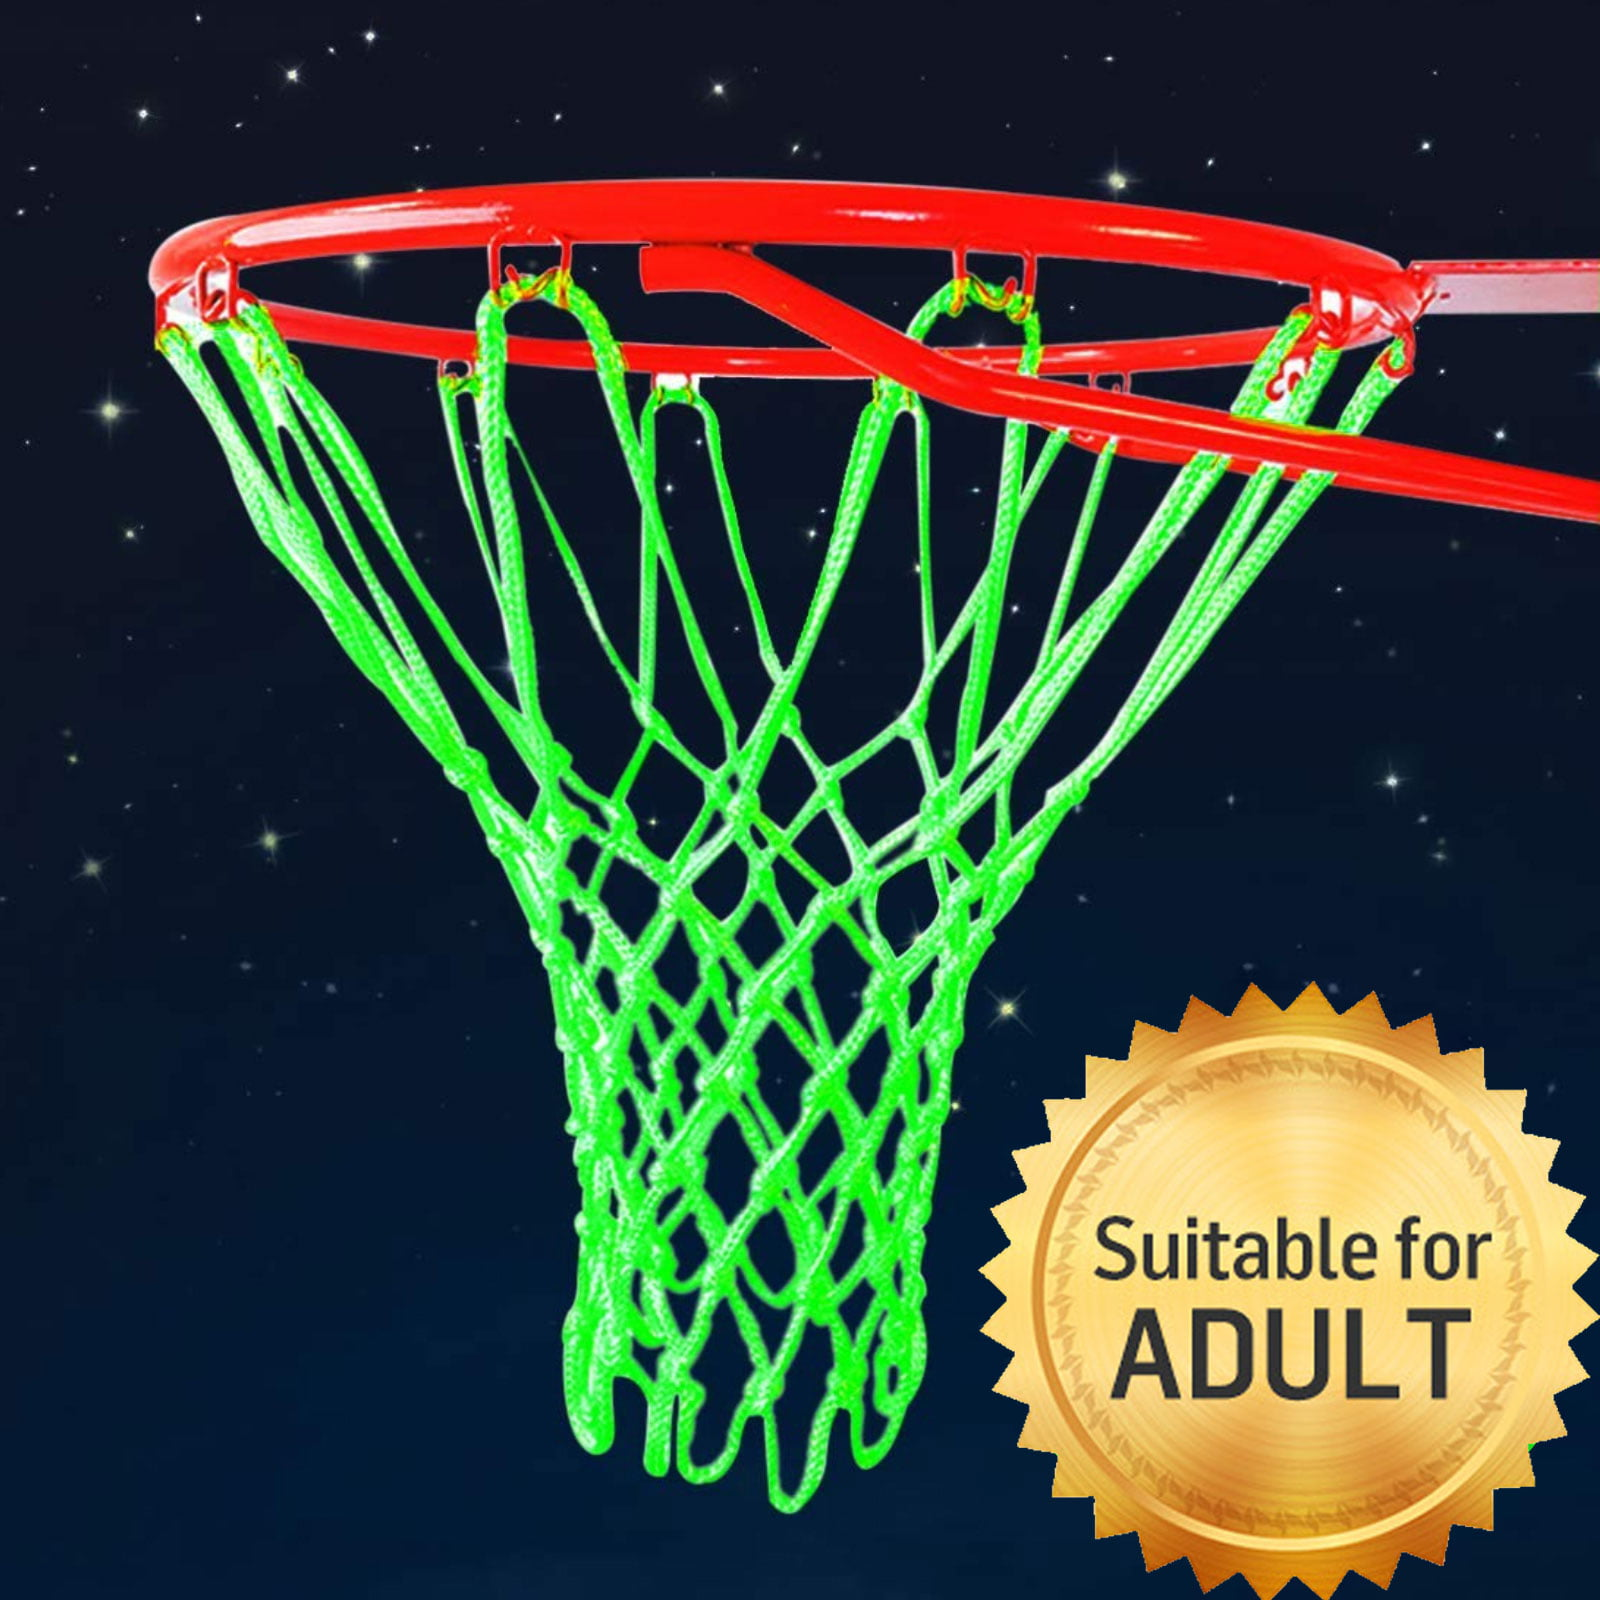 Ruolan Outdoor Basketball Net Glow in The Dark Nylon Glowing Basketball Net Anti Whip Heavy Duty 12 Loops Standard Size Night Basketball Sports Gift for Kids Boys Outdoor Sports Pool School